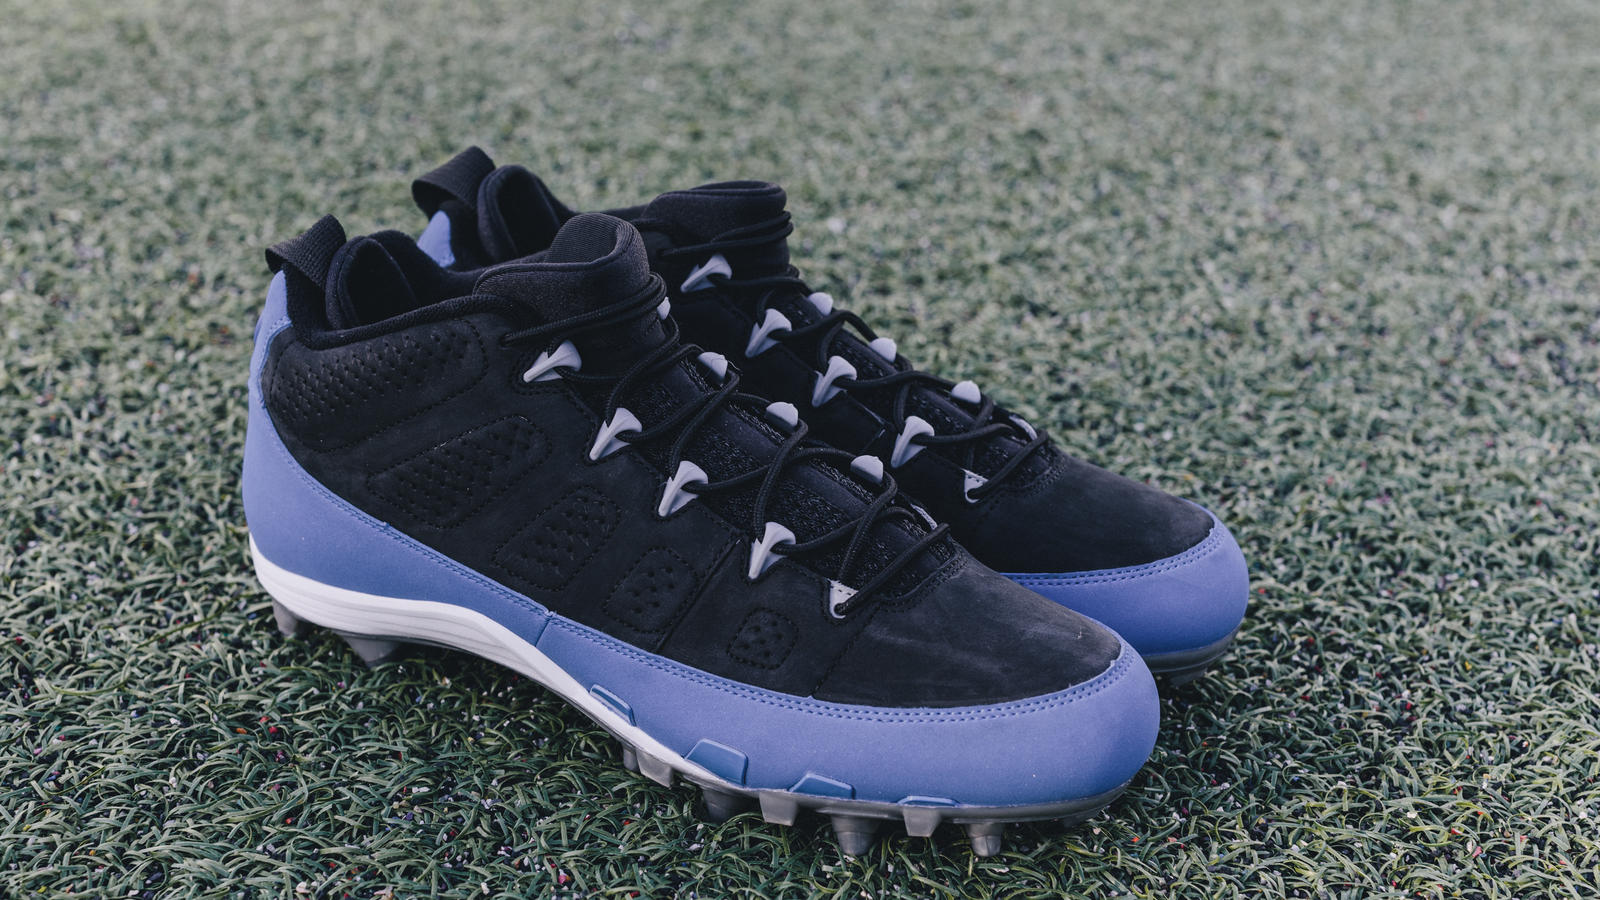 Golden Tate Earl Thomas Air Jordan IX PE Cleats